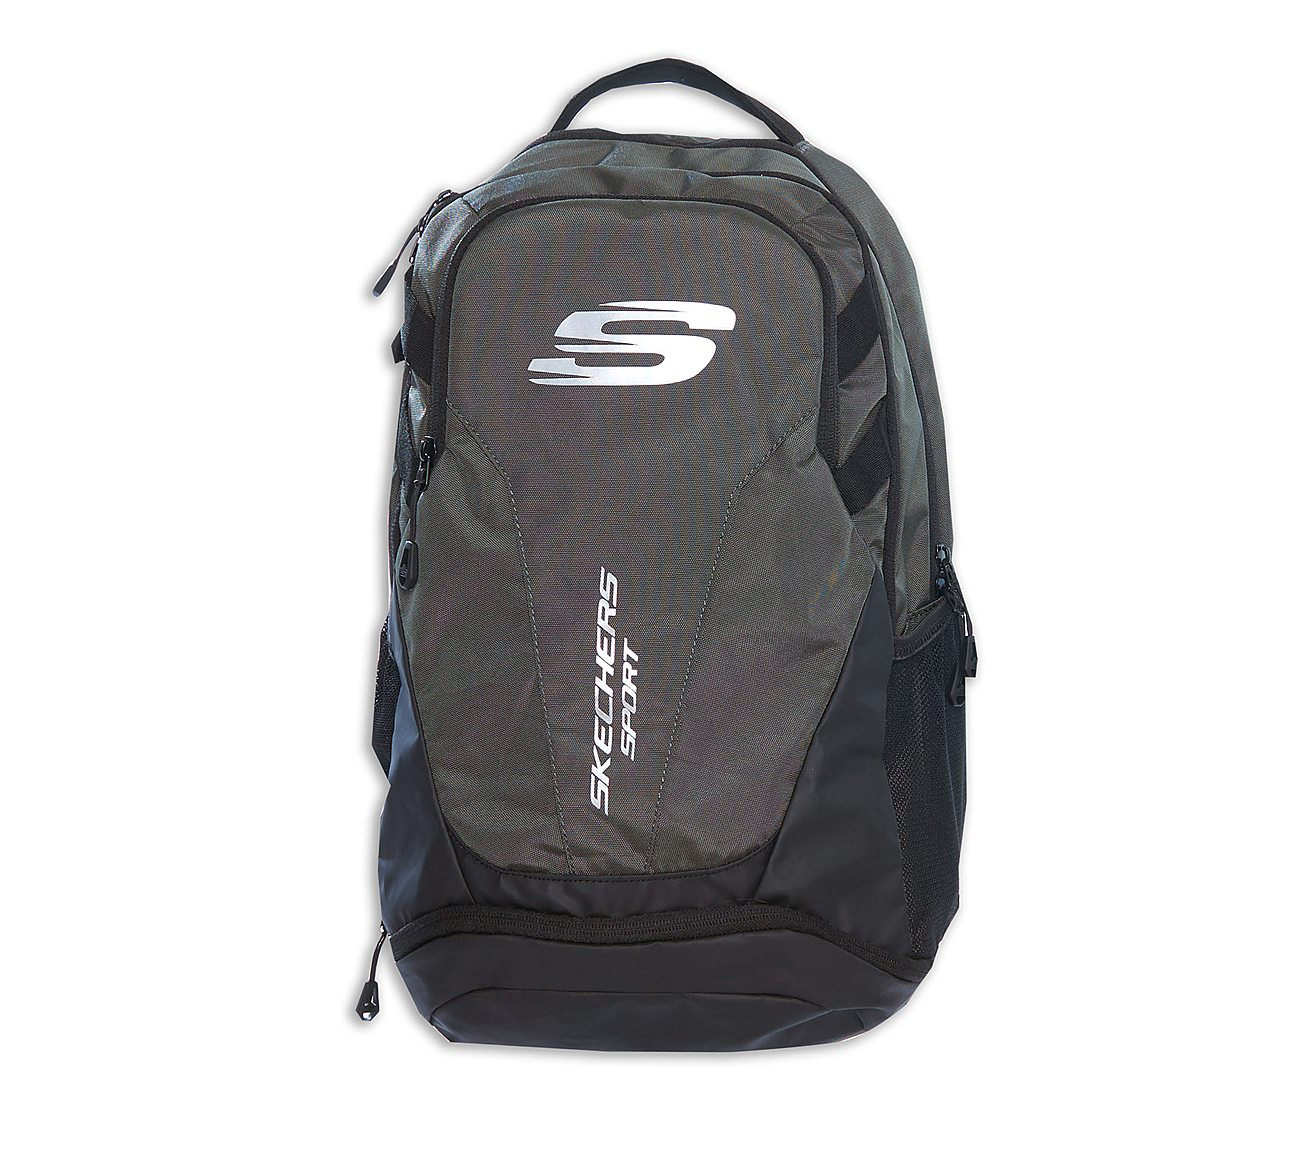 Buy SKECHERS Force Backpack Bags Shoes